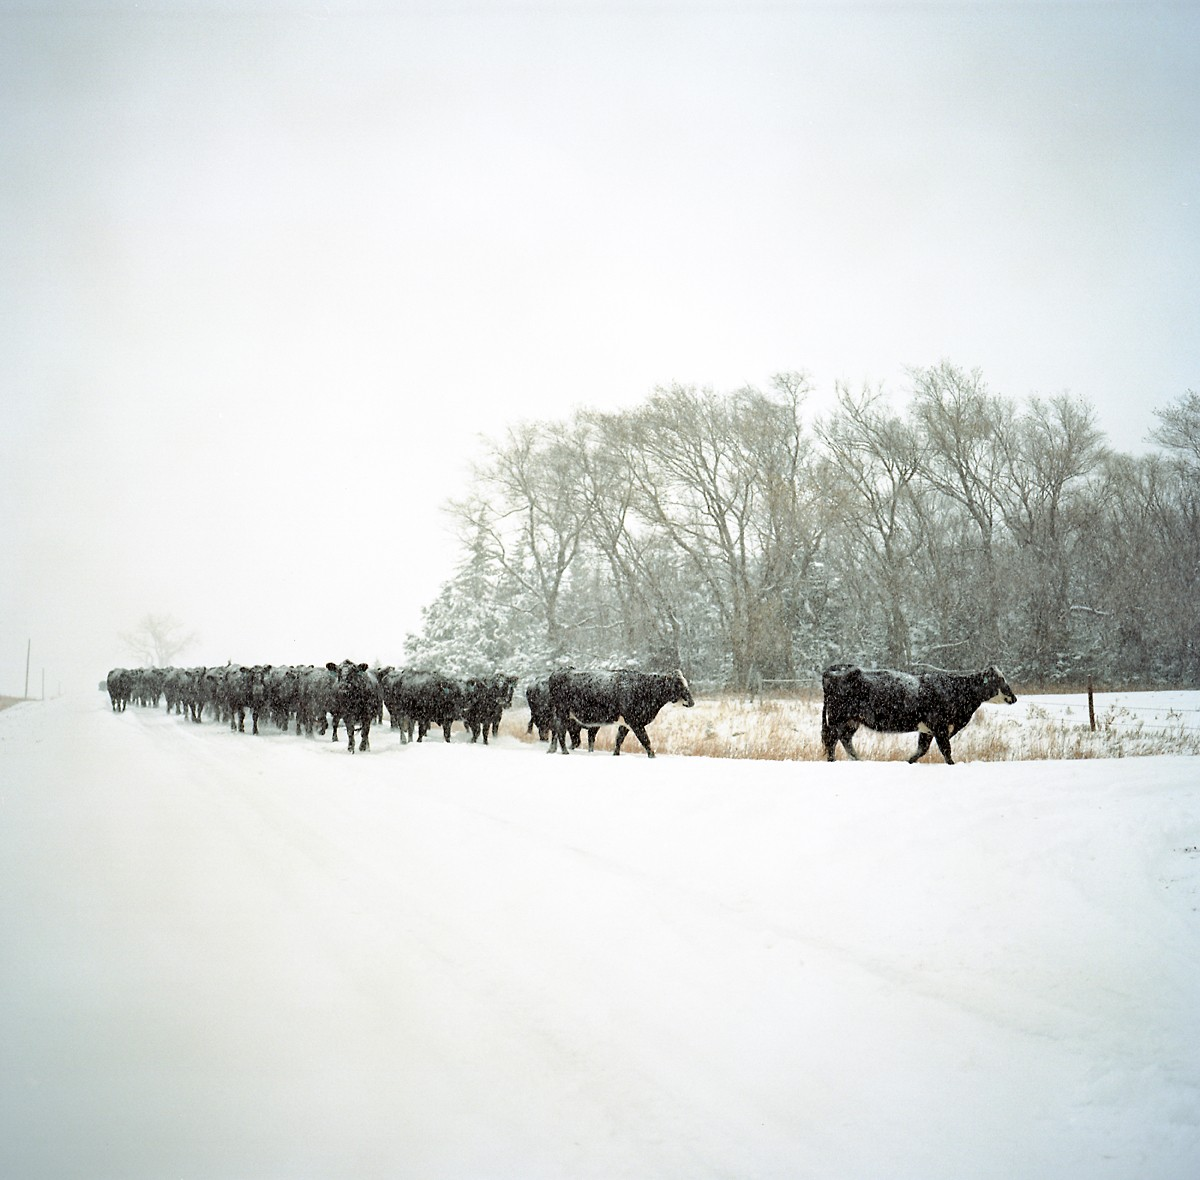 The Kilmurry family's cattle are moved from one field to another during a snowstorm, Atkinson, Nebraska. The Kilmurry's have rejected TransCanada's attempts to get them to sign an easement to let the Keystone XL pipeline cross their property.